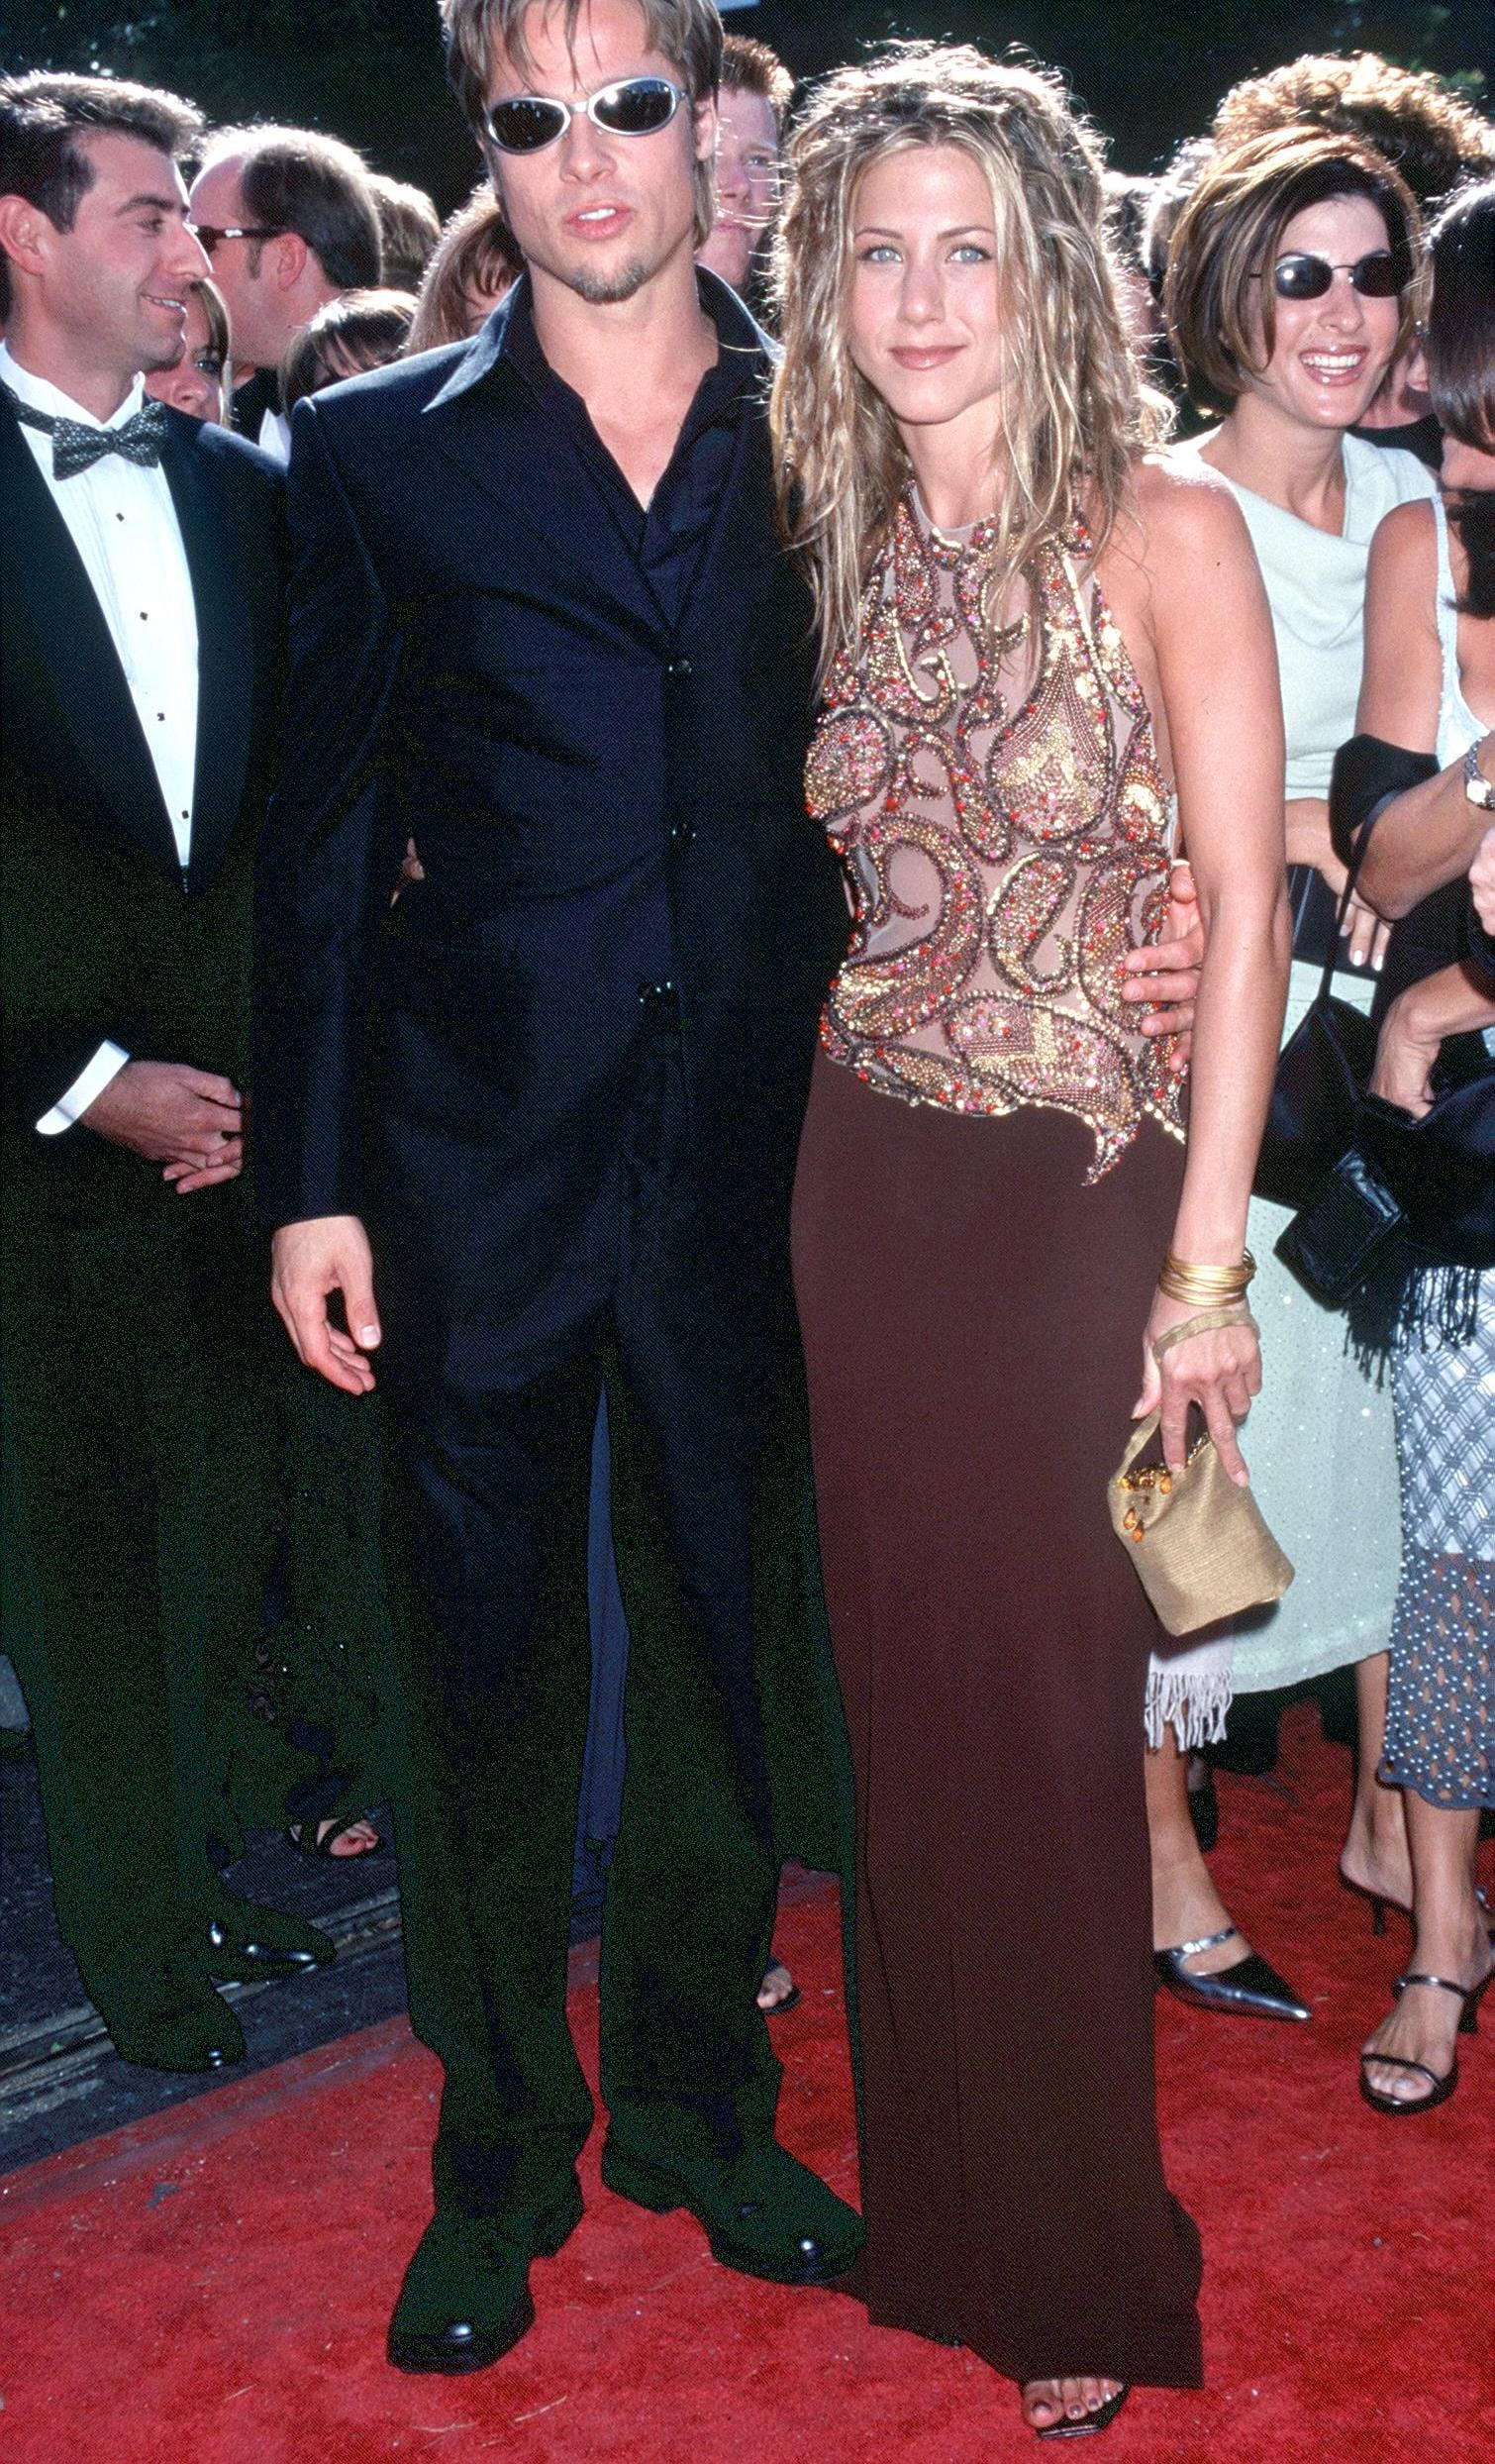 jennifer aniston at the 1999 emmys